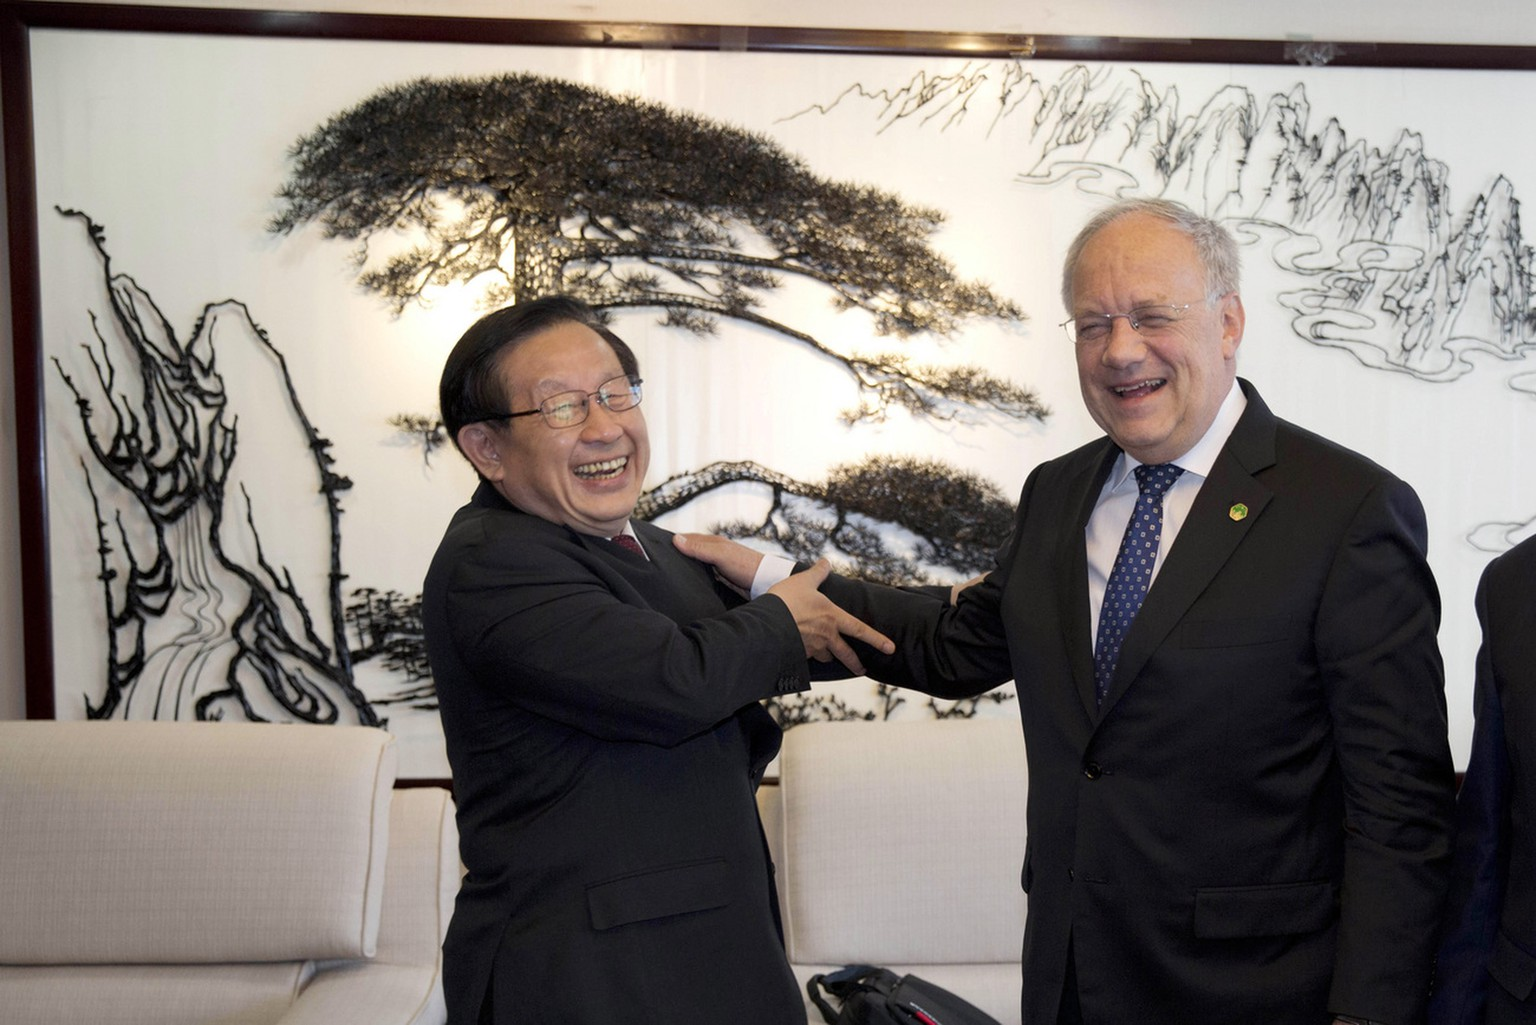 Switzerland's Federal President Johann Schneider-Ammann, right, enjoys a moment with China's Minister of Science and Technology Wan Gang during a visit to the ministry in Beijing, China, Friday, April 8, 2016. (AP Photo/Ng Han Guan)